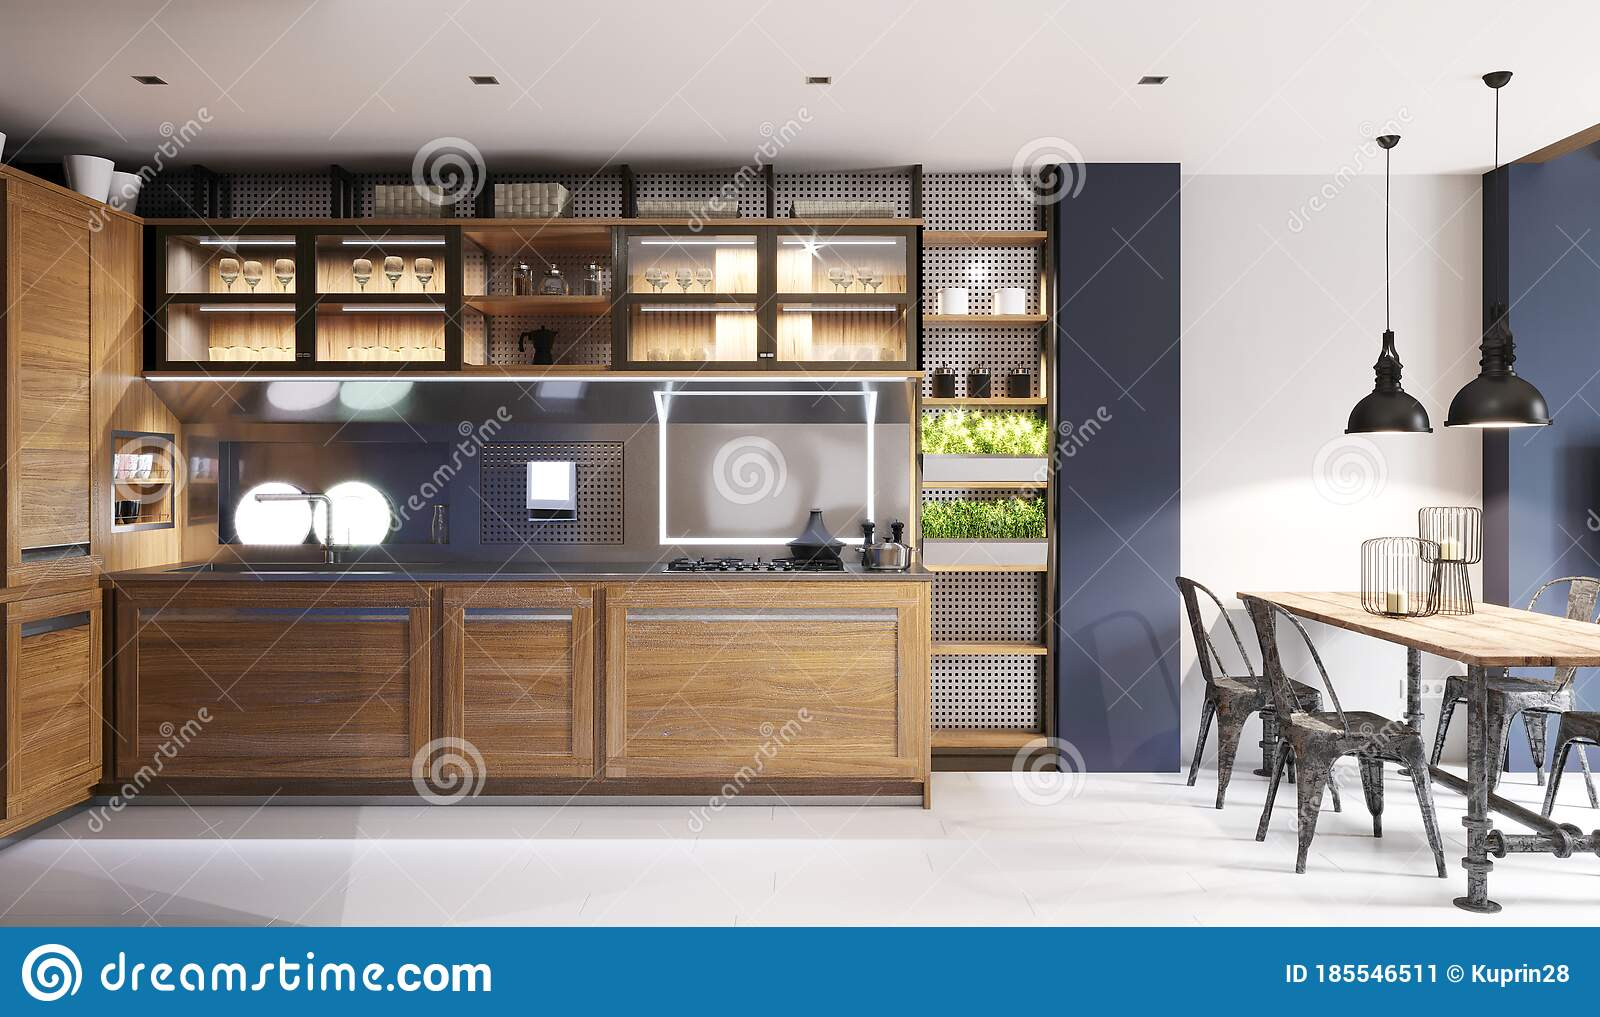 Modern Kitchen With Dark Blue Walls And Wooden Light Furniture And White Floor In Hipster Style Stock Illustration Illustration Of Flat Contemporary 185546511